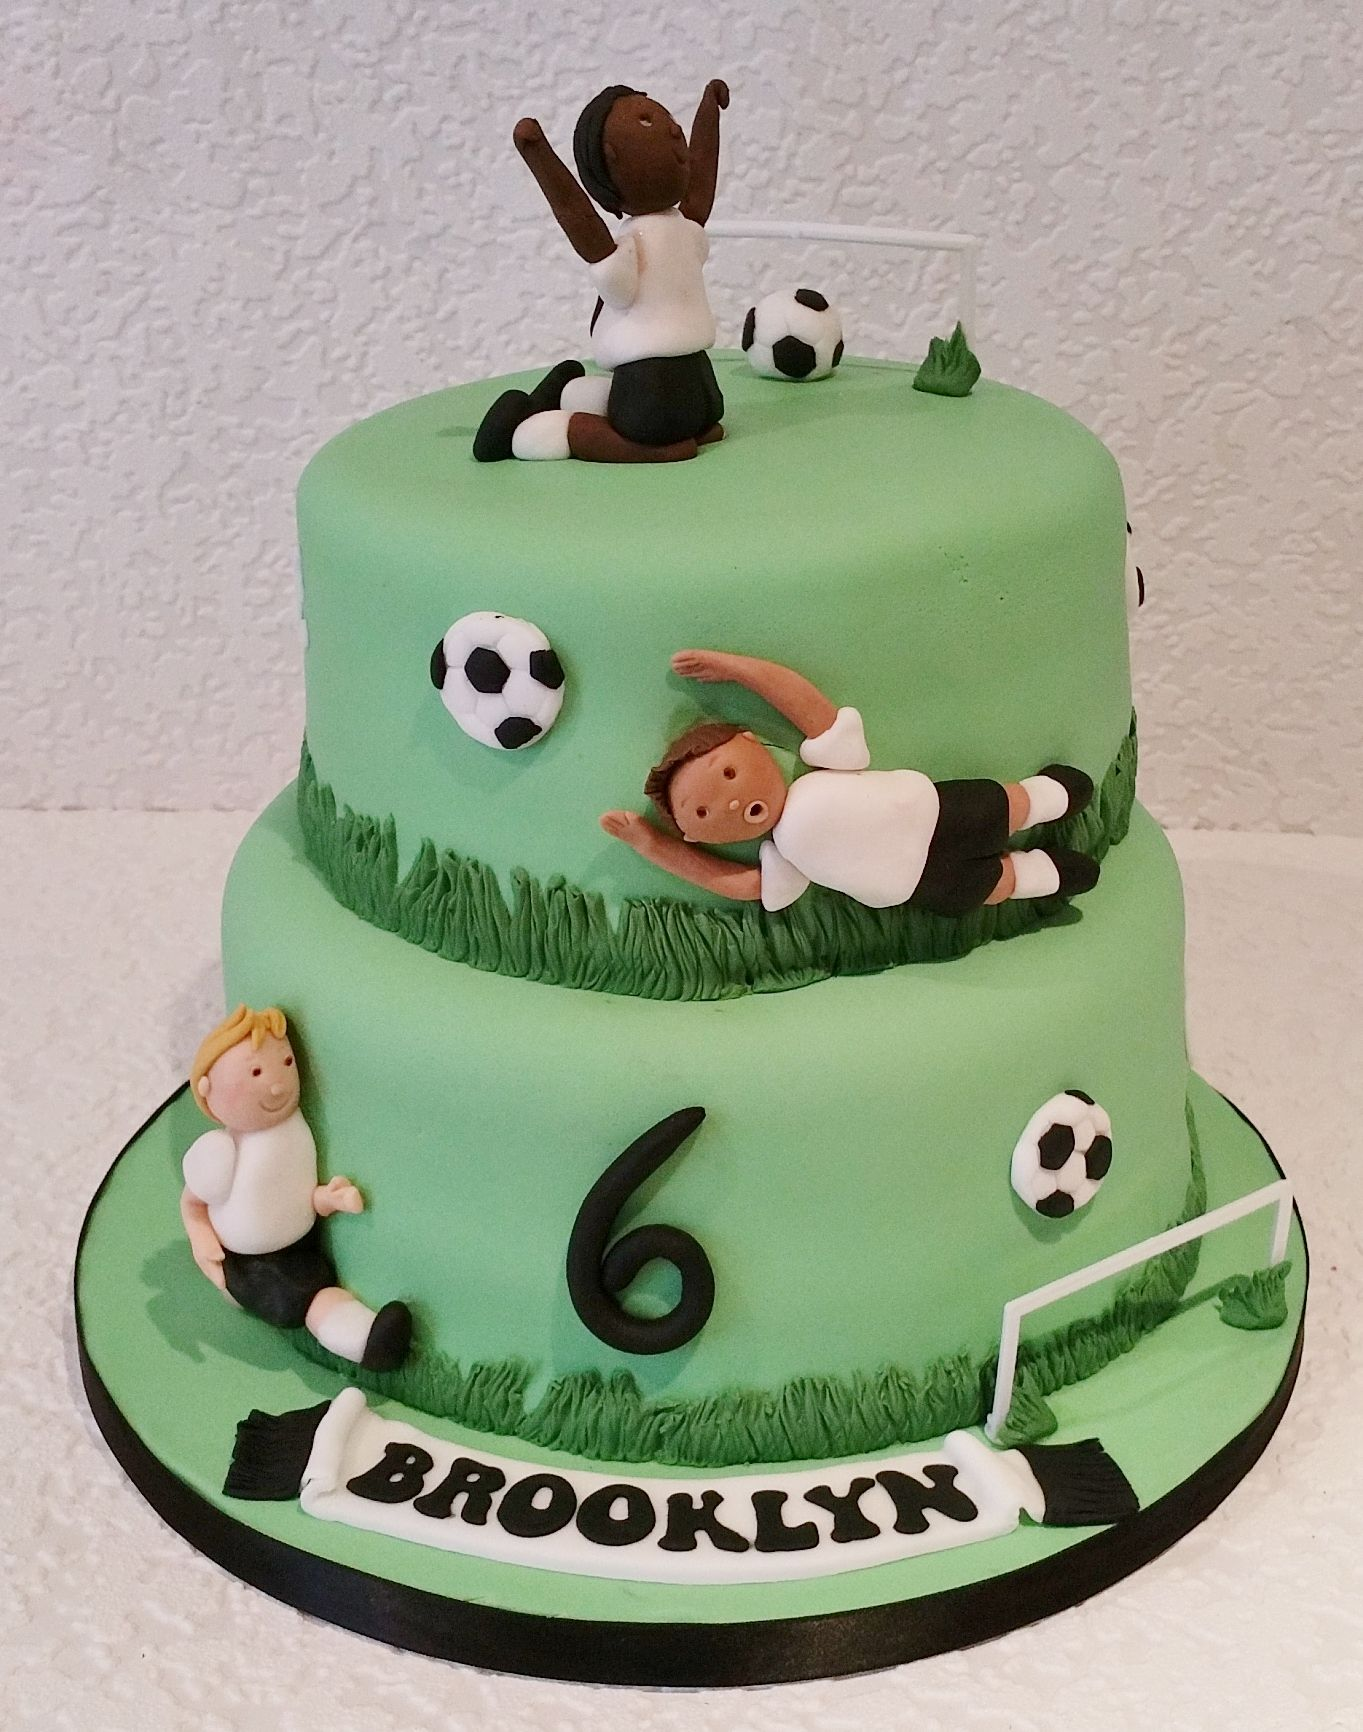 Football Themed Cake By Baking Angel With Images Football